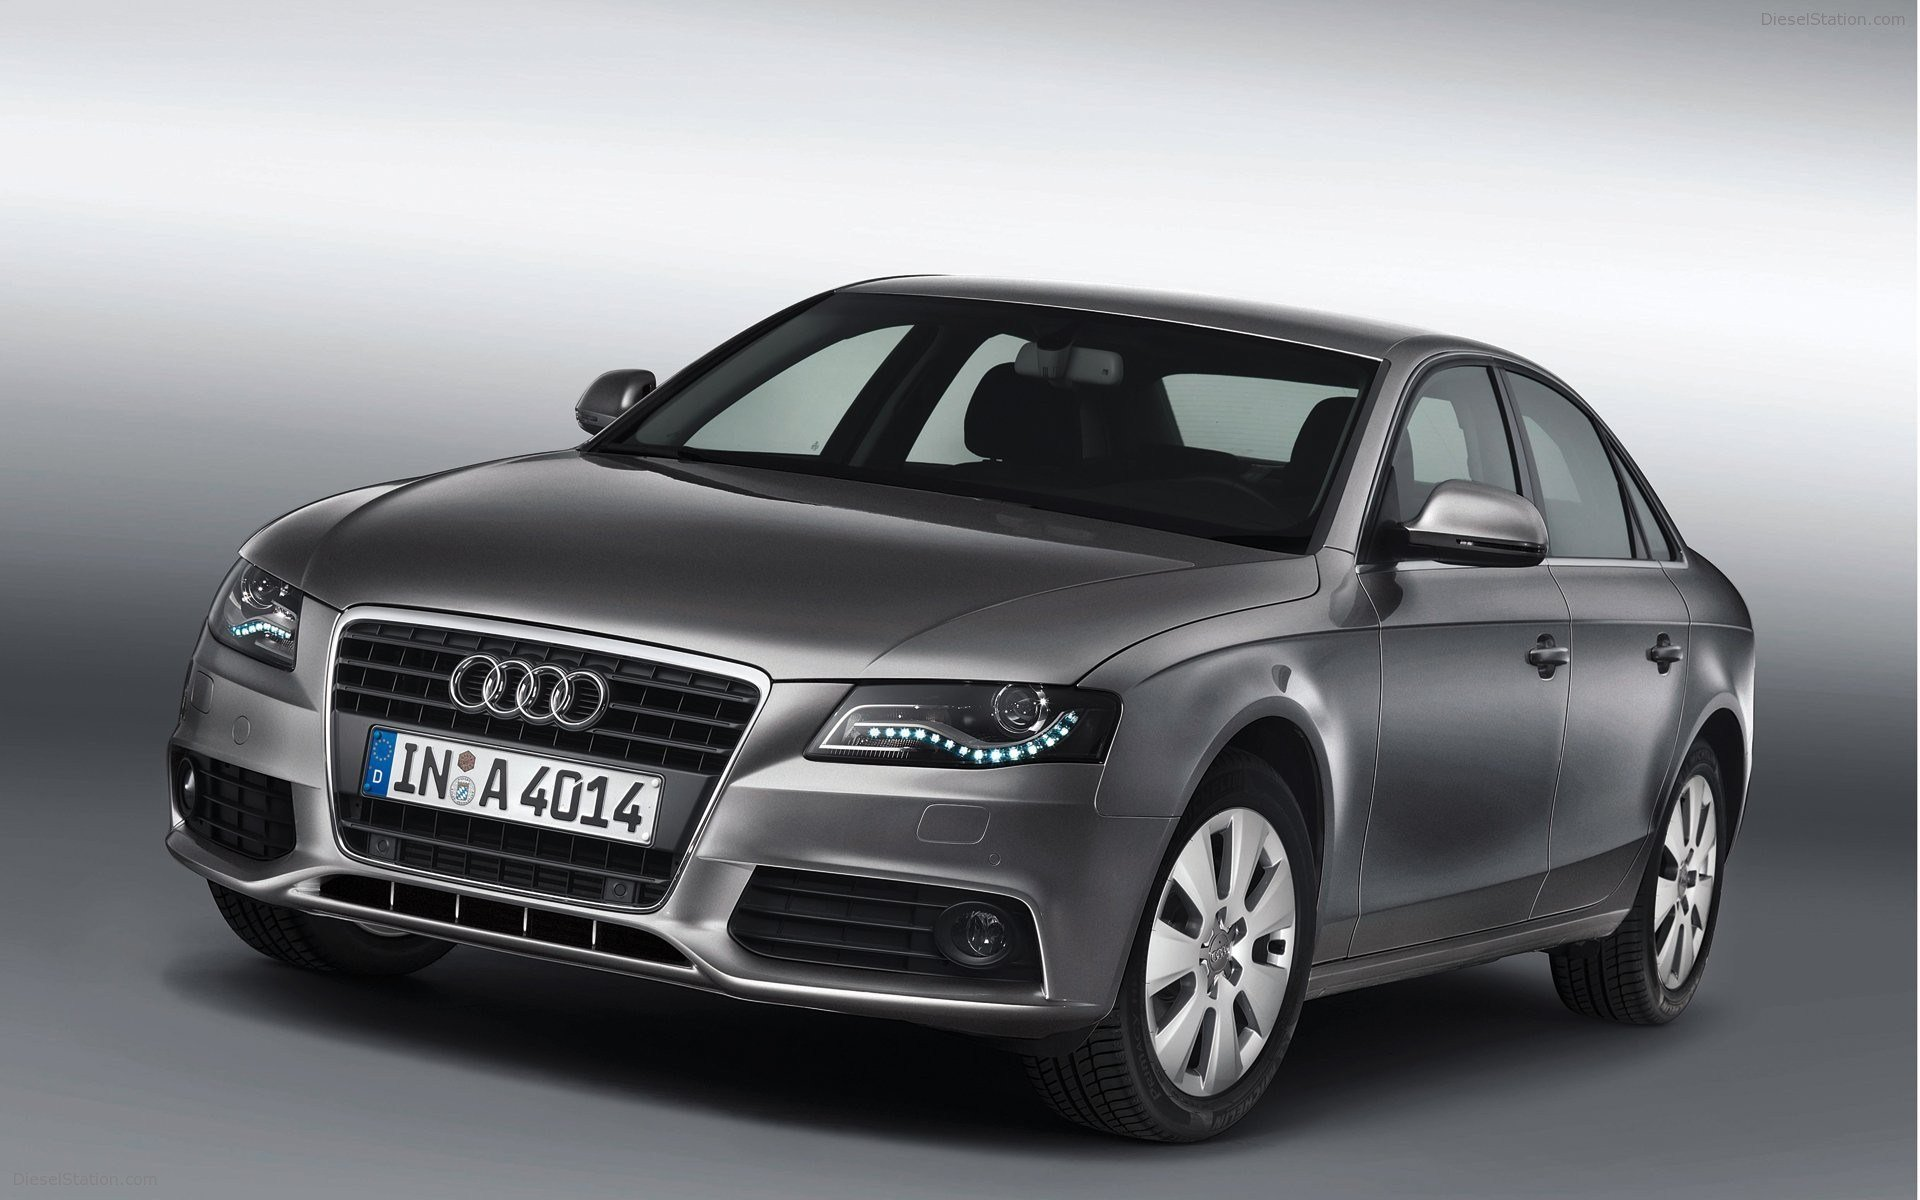 Latest Audi A4 2 Tfsi In Pakistan A4 Audi A4 2 Tfsi Price Free Download